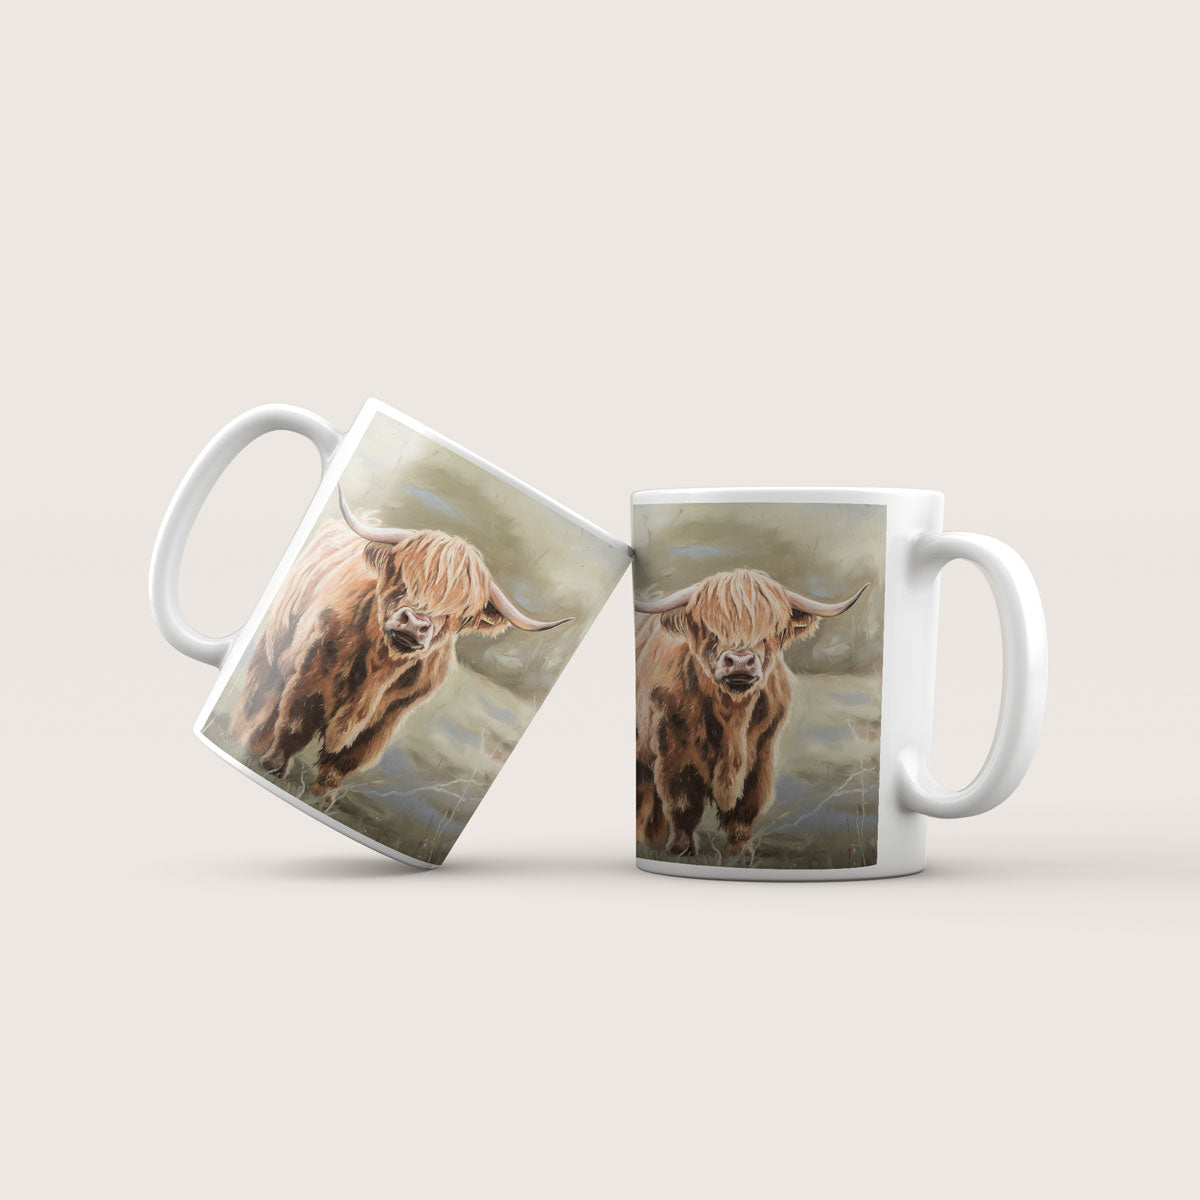 Bonnie Highland cow mug